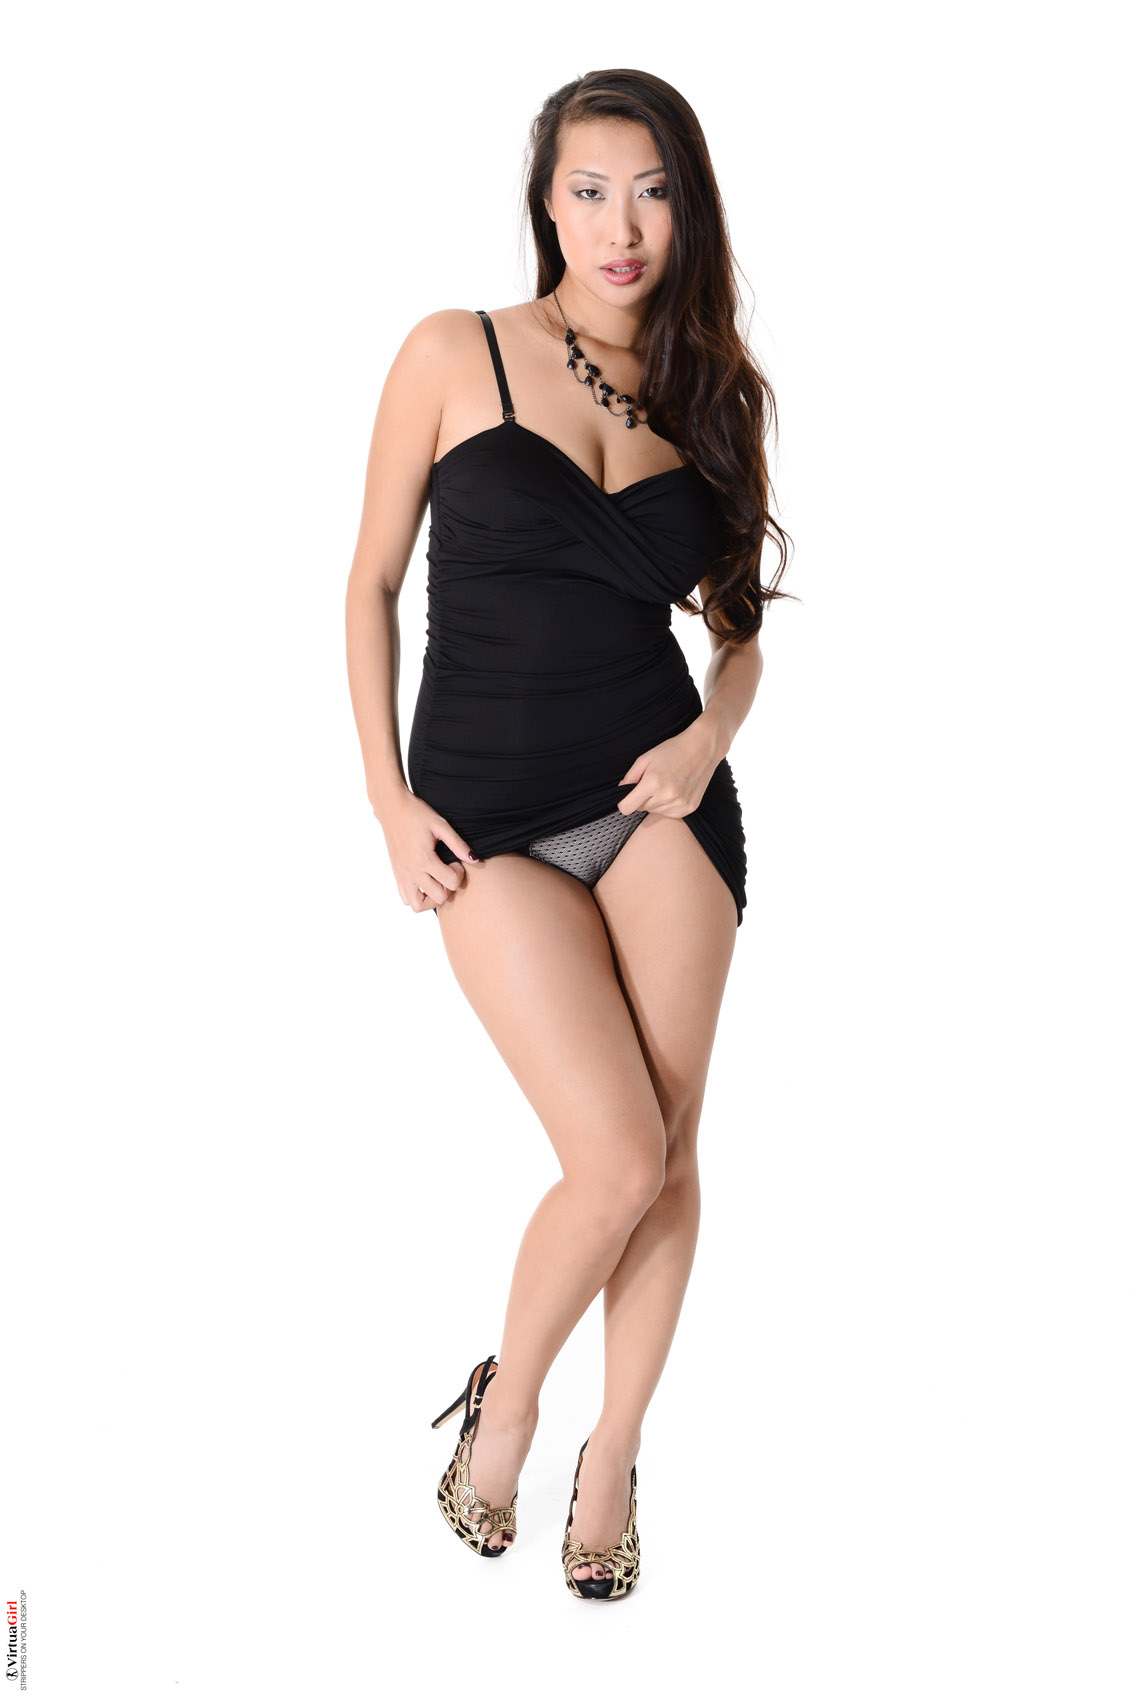 Click here to see more Sharon Lee @ Virtua Girl: www.foxhq.com/sharon-lee-black-dress-beauty